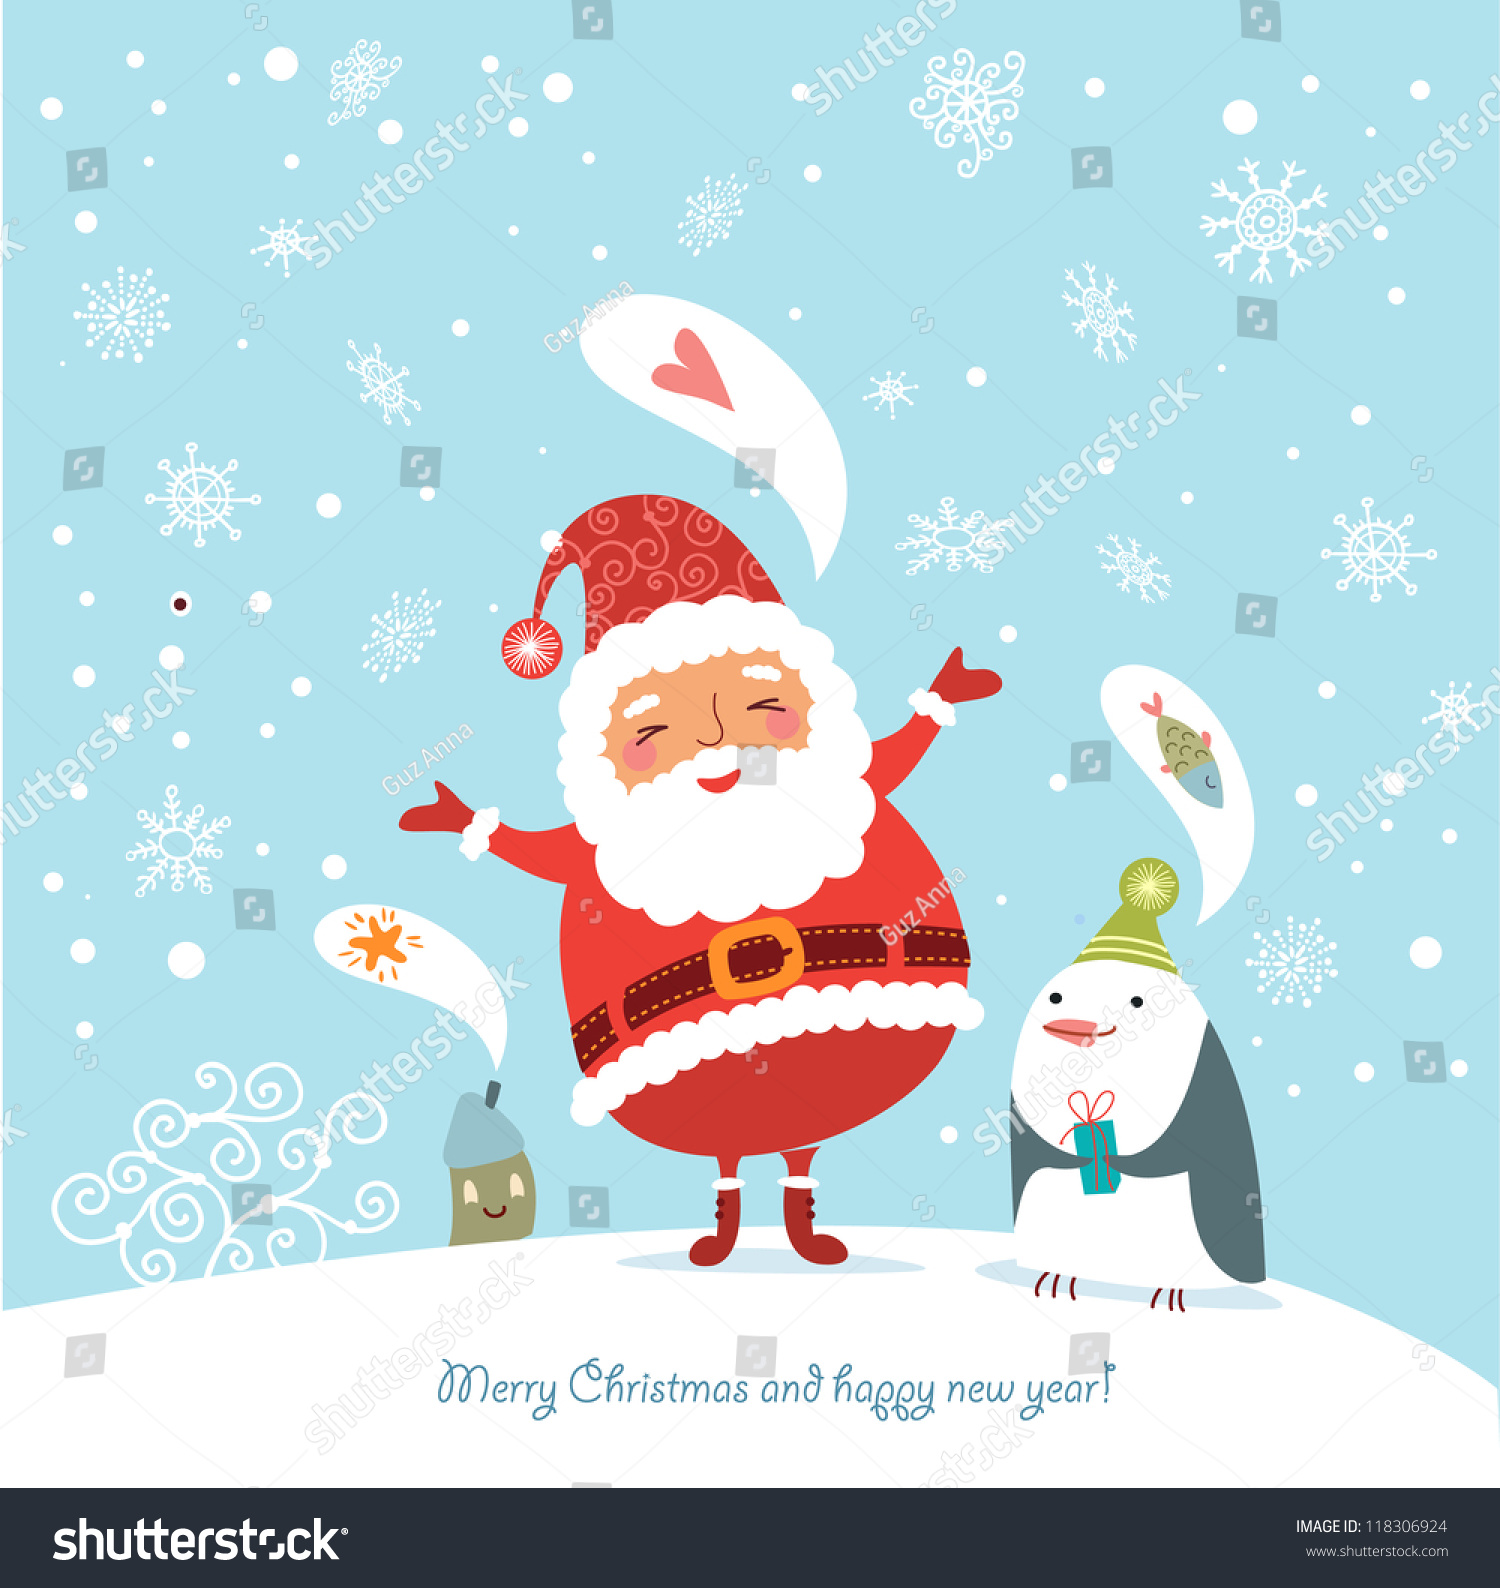 Christmas Card Picture Funny Cute Christmas Card Stock Vector 118306924 Shutterstock